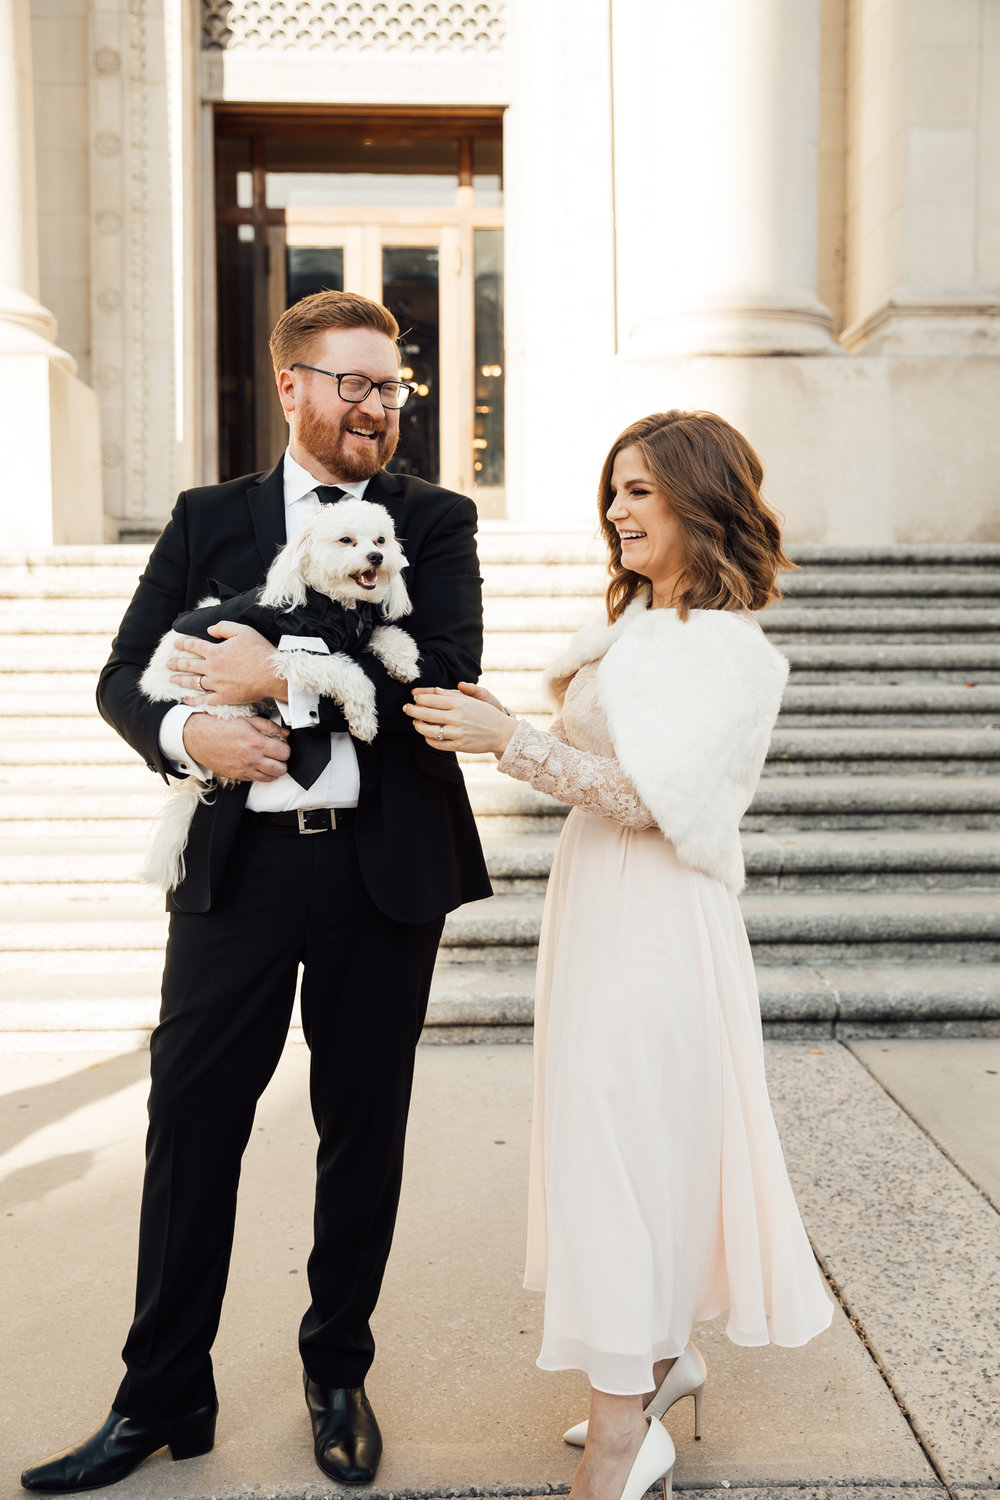 memphis-courthouse-elopement-thewarmtharoundyou-amanda-michael (113 of 143).jpg